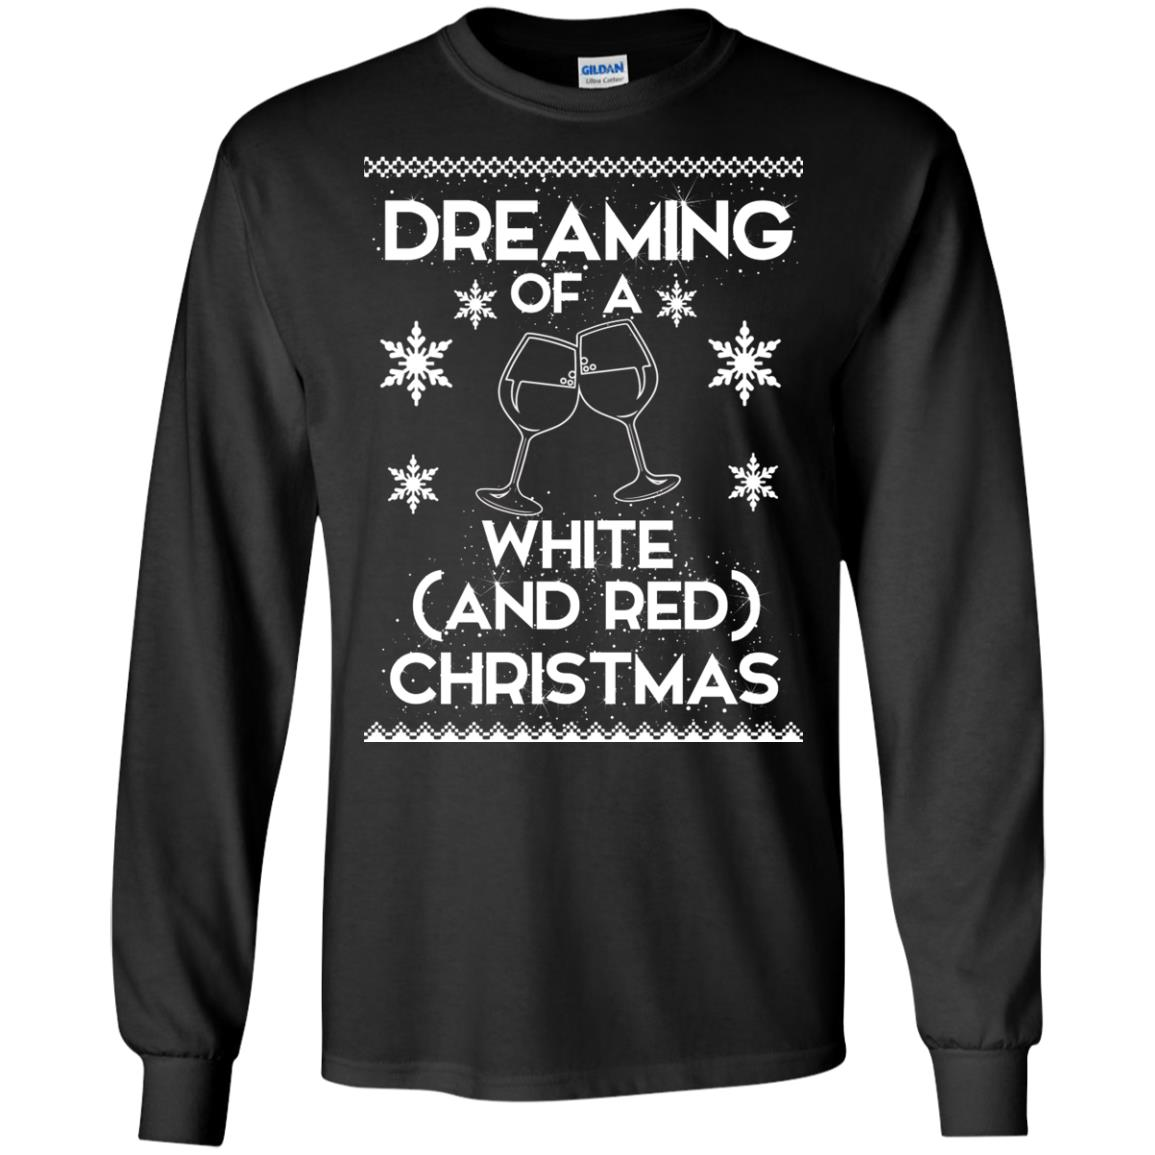 image 1756 - Dreaming of a White and Red Christmas Sweatshirt, Hoodie